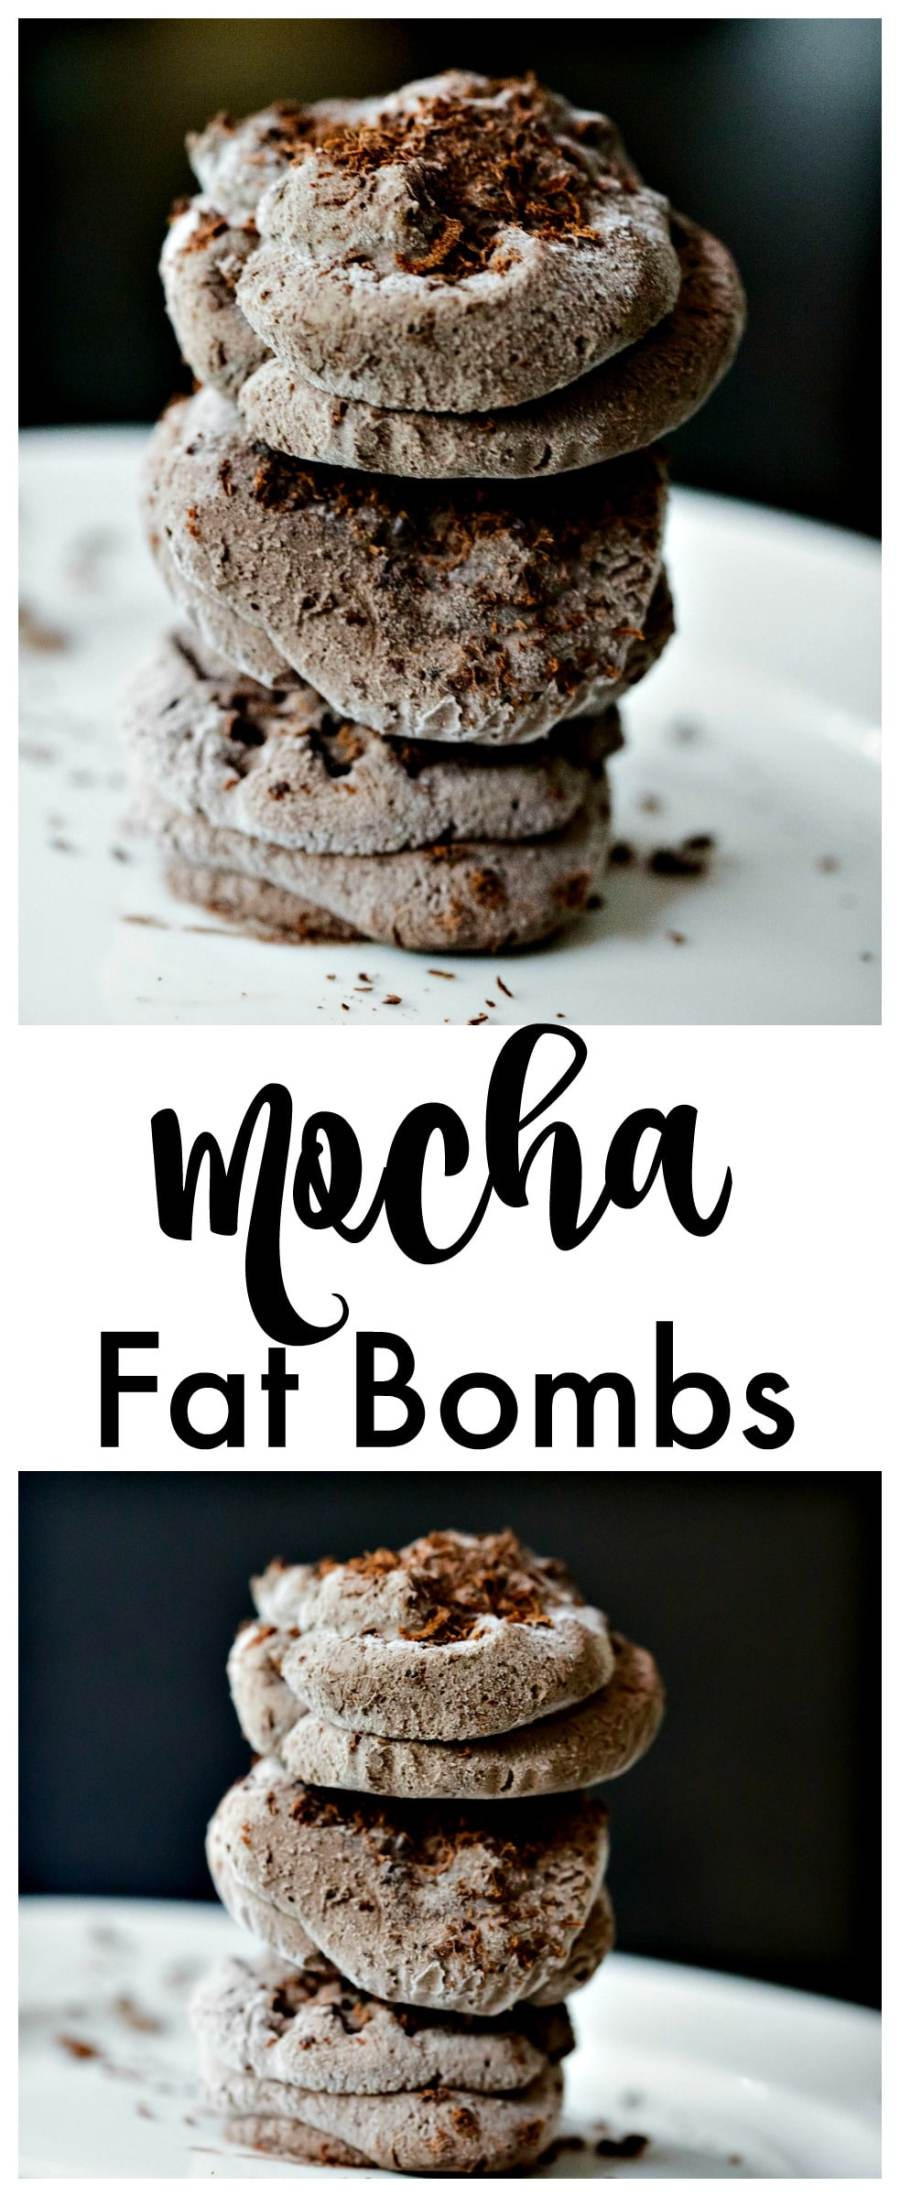 Mocha Chocolate Fat Bombs are delicious keto-friendly sweet treats that don't go over your macros! Make our low carb fat bombs in minutes and serve up to your friends and family, or sneak for yourself when nobody is looking!